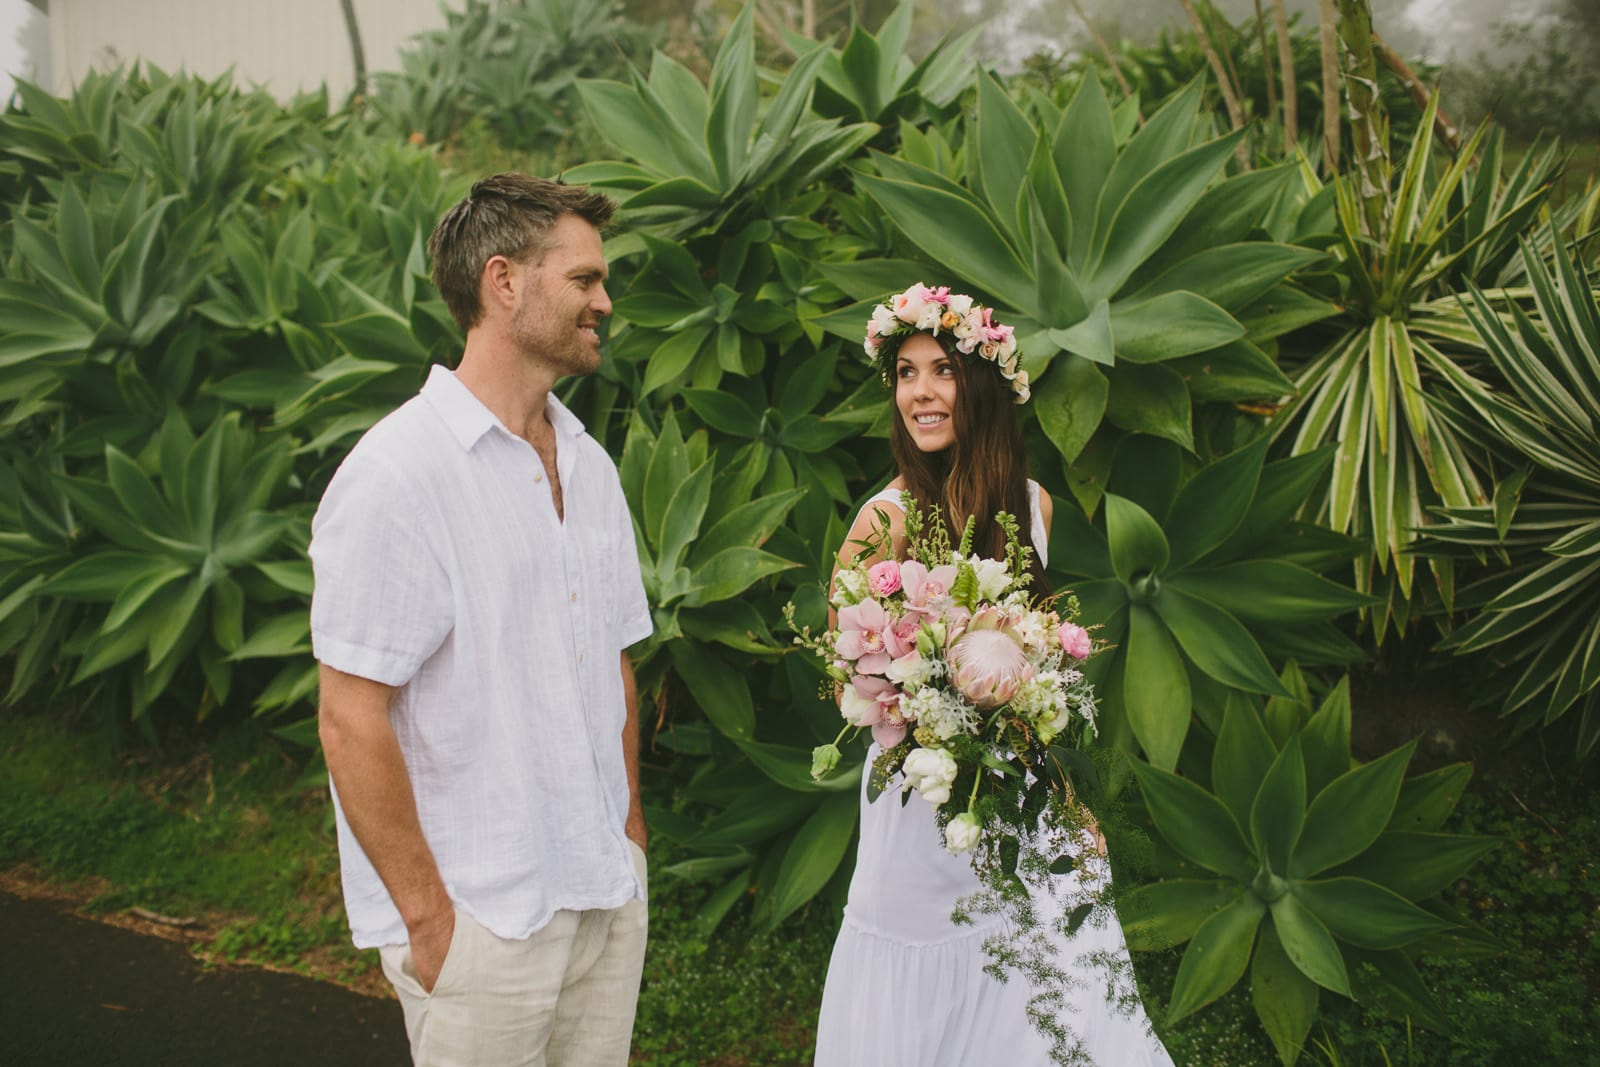 Maui_Wedding_Wailea_Kapalua_Hawaii_Photographer_029